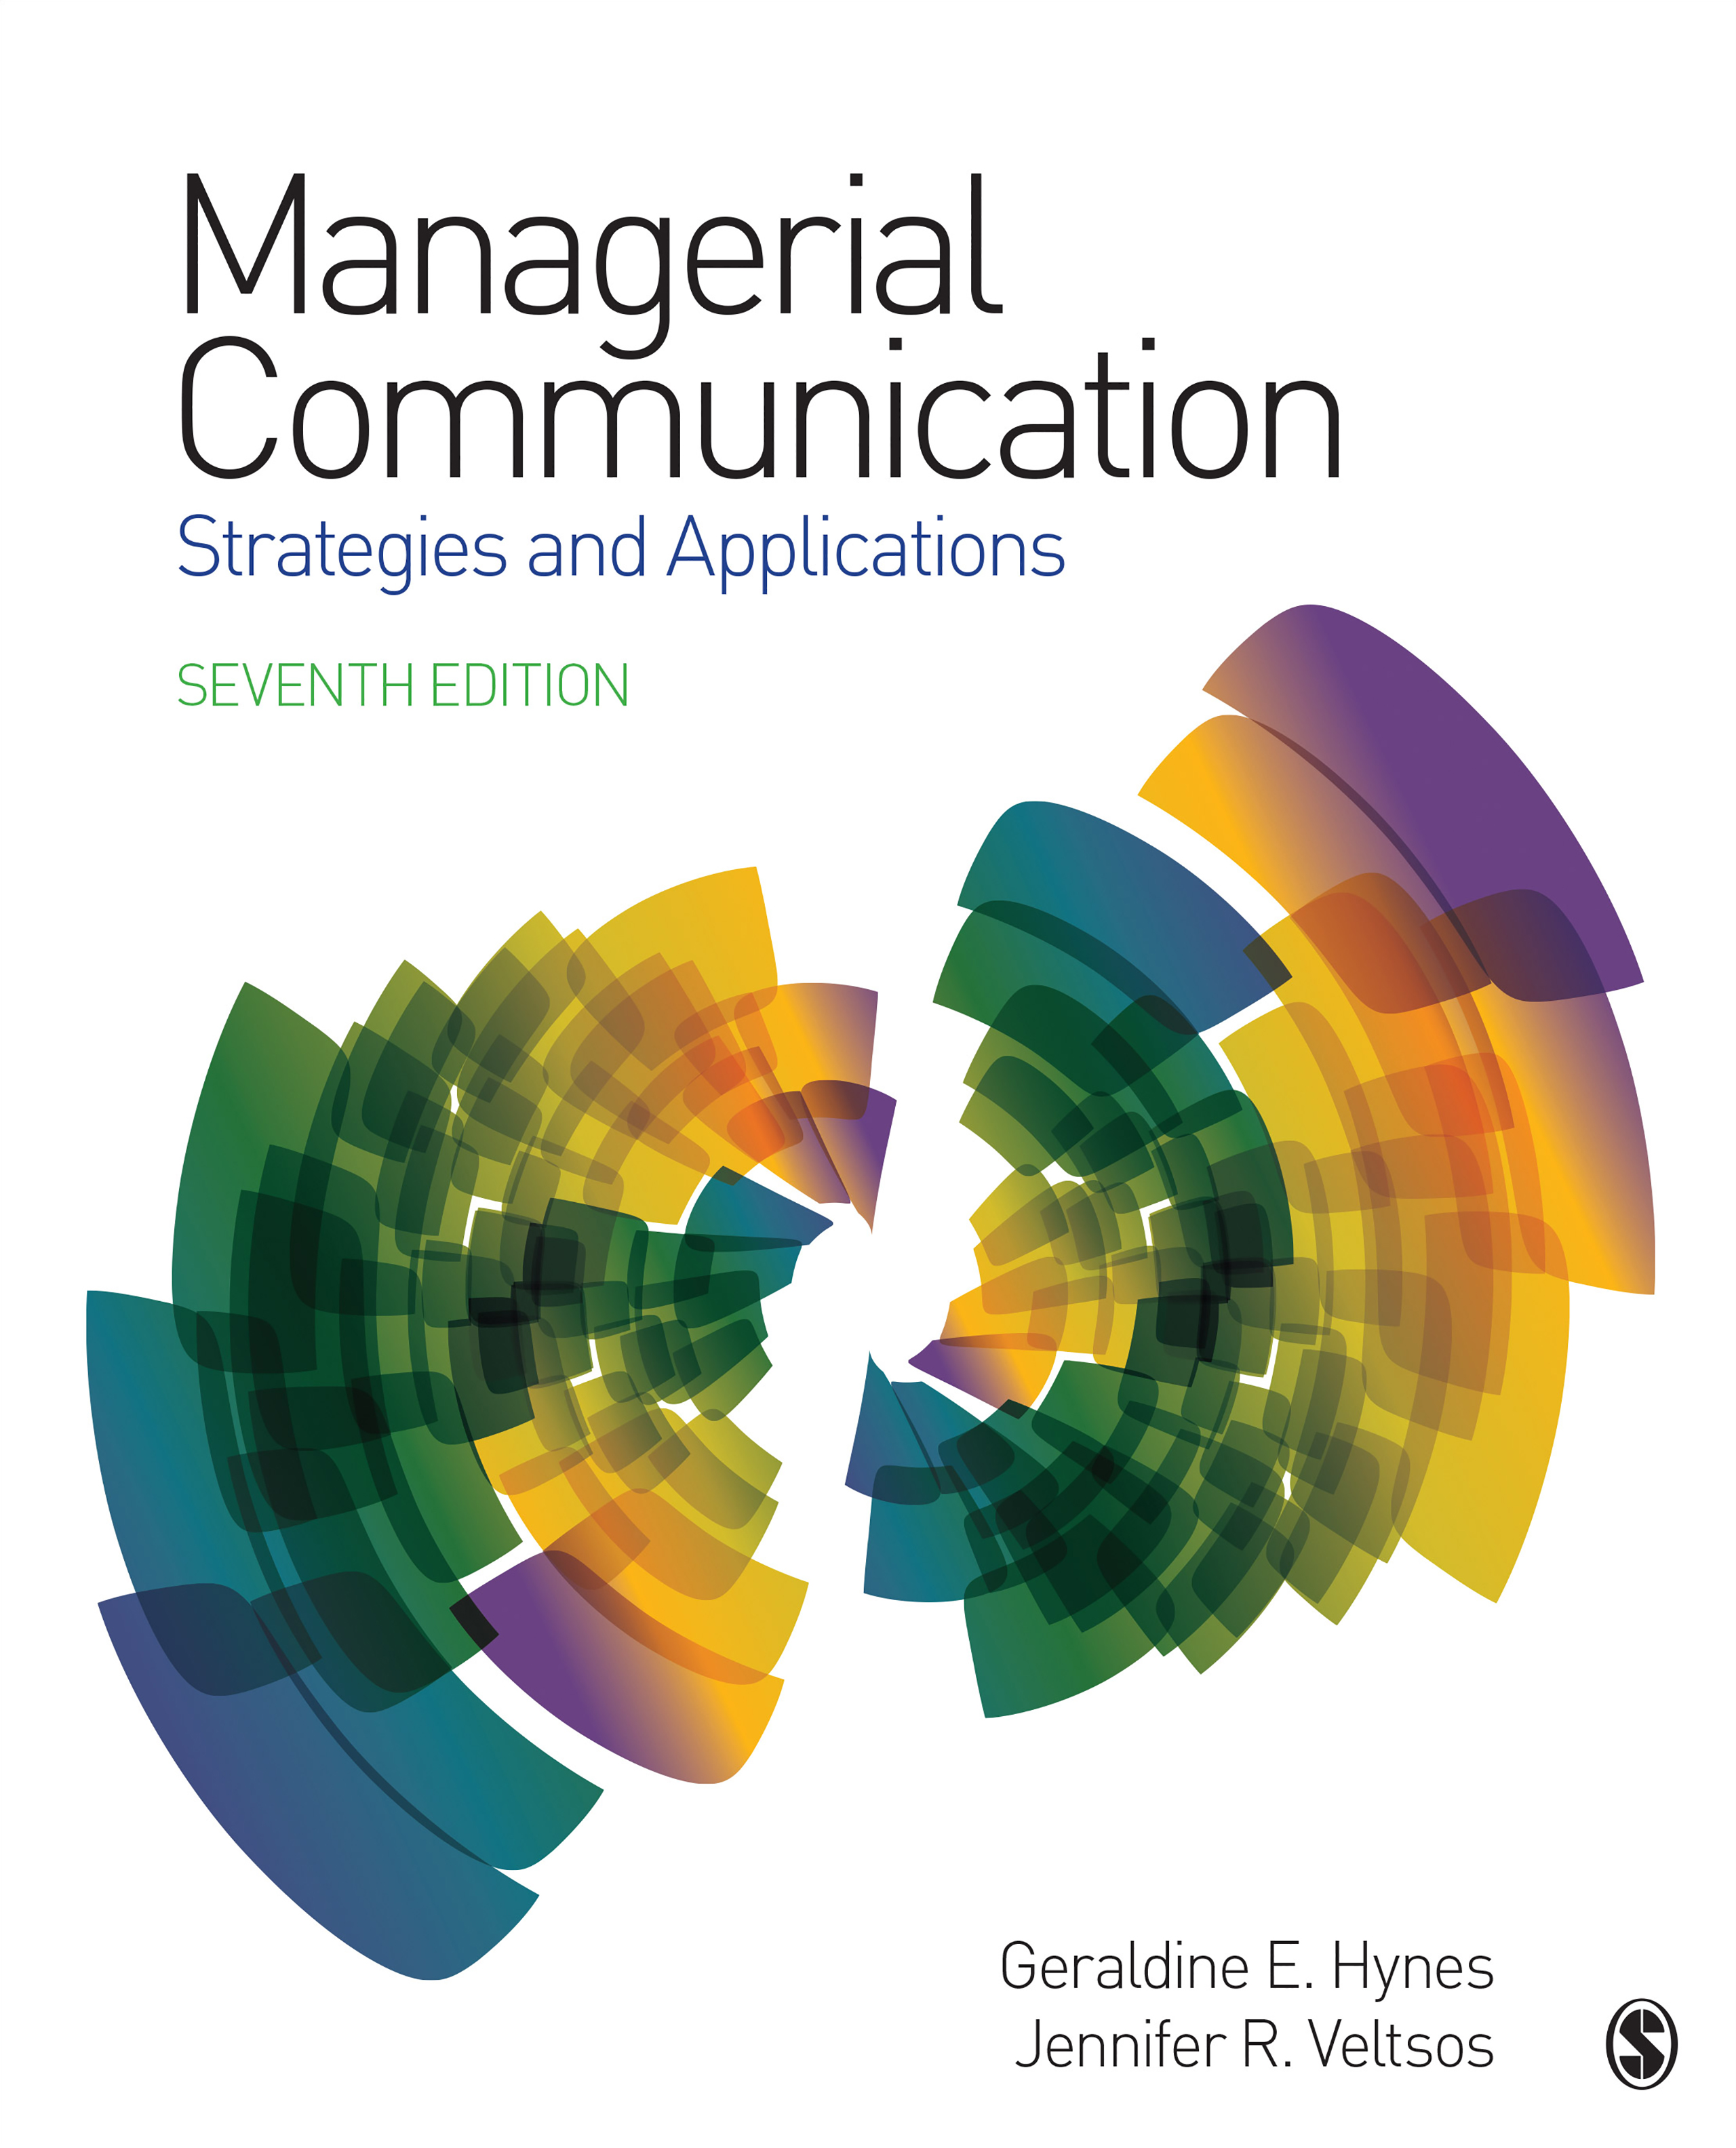 Download Ebook Managerial  Communication (7th ed.) by Geraldine E. Hynes Pdf